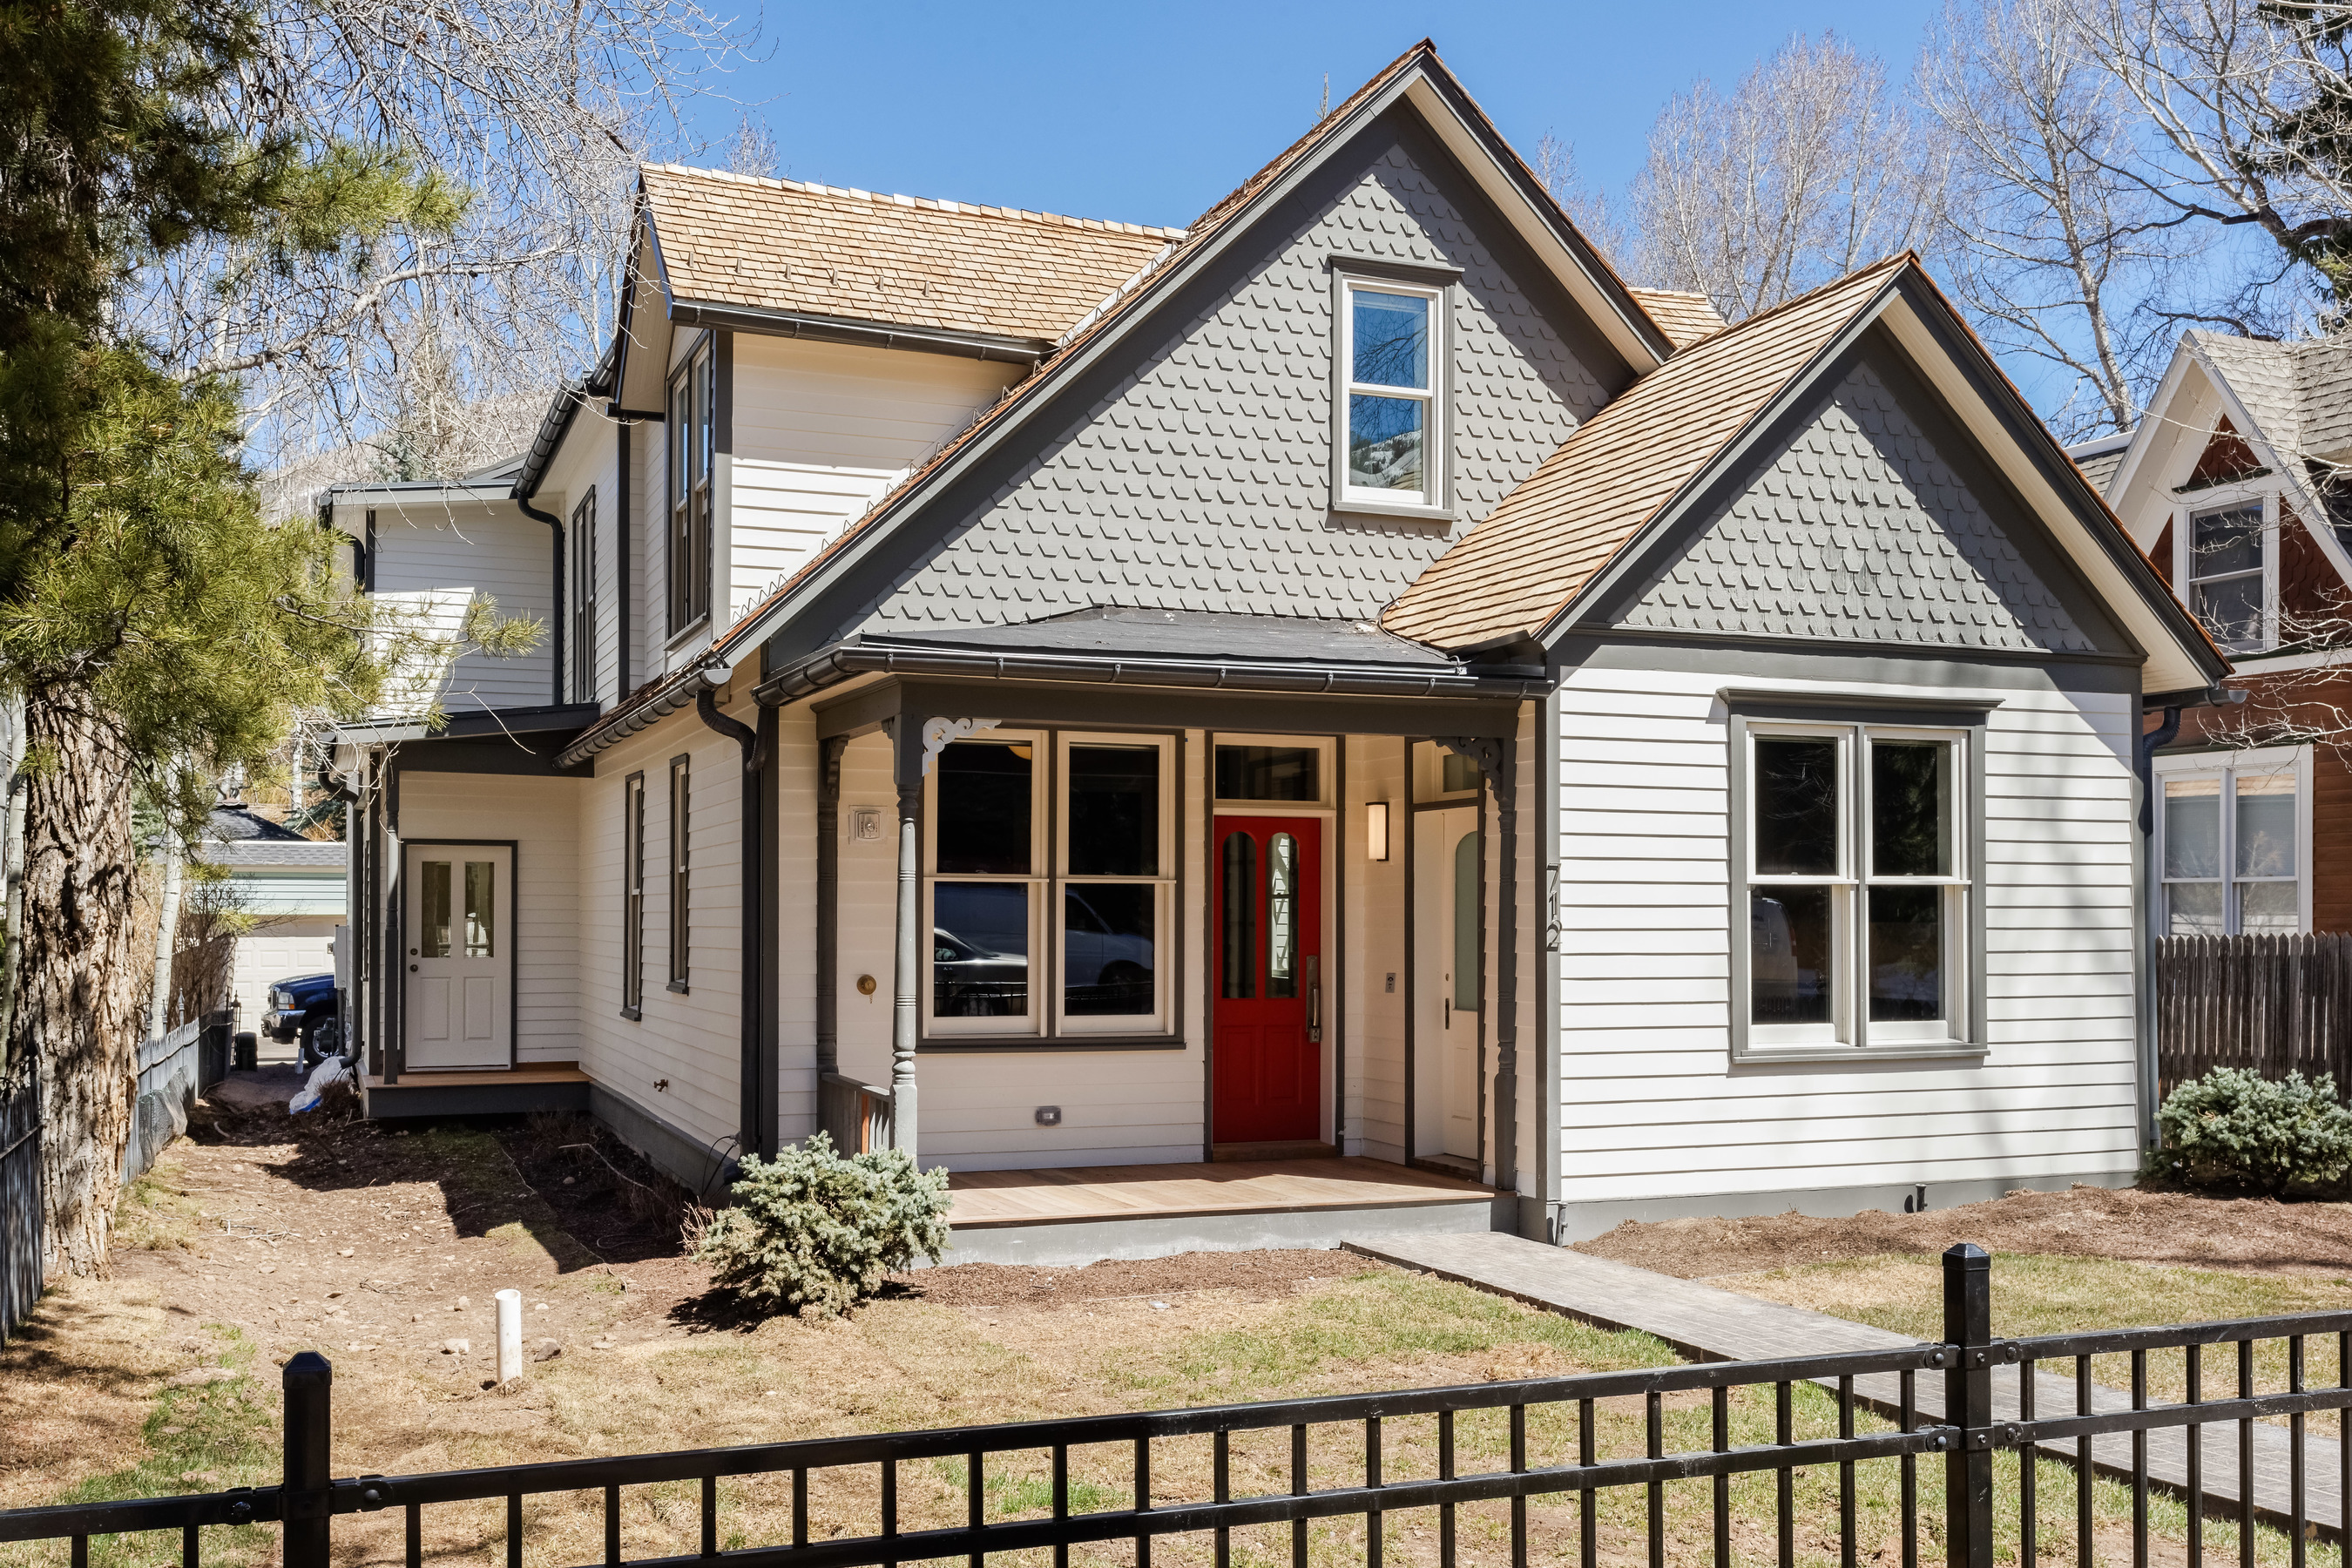 Single Family Home for Sale at Contemporary West End Retreat 712 West Francis Street West End, Aspen, Colorado, 81611 United States